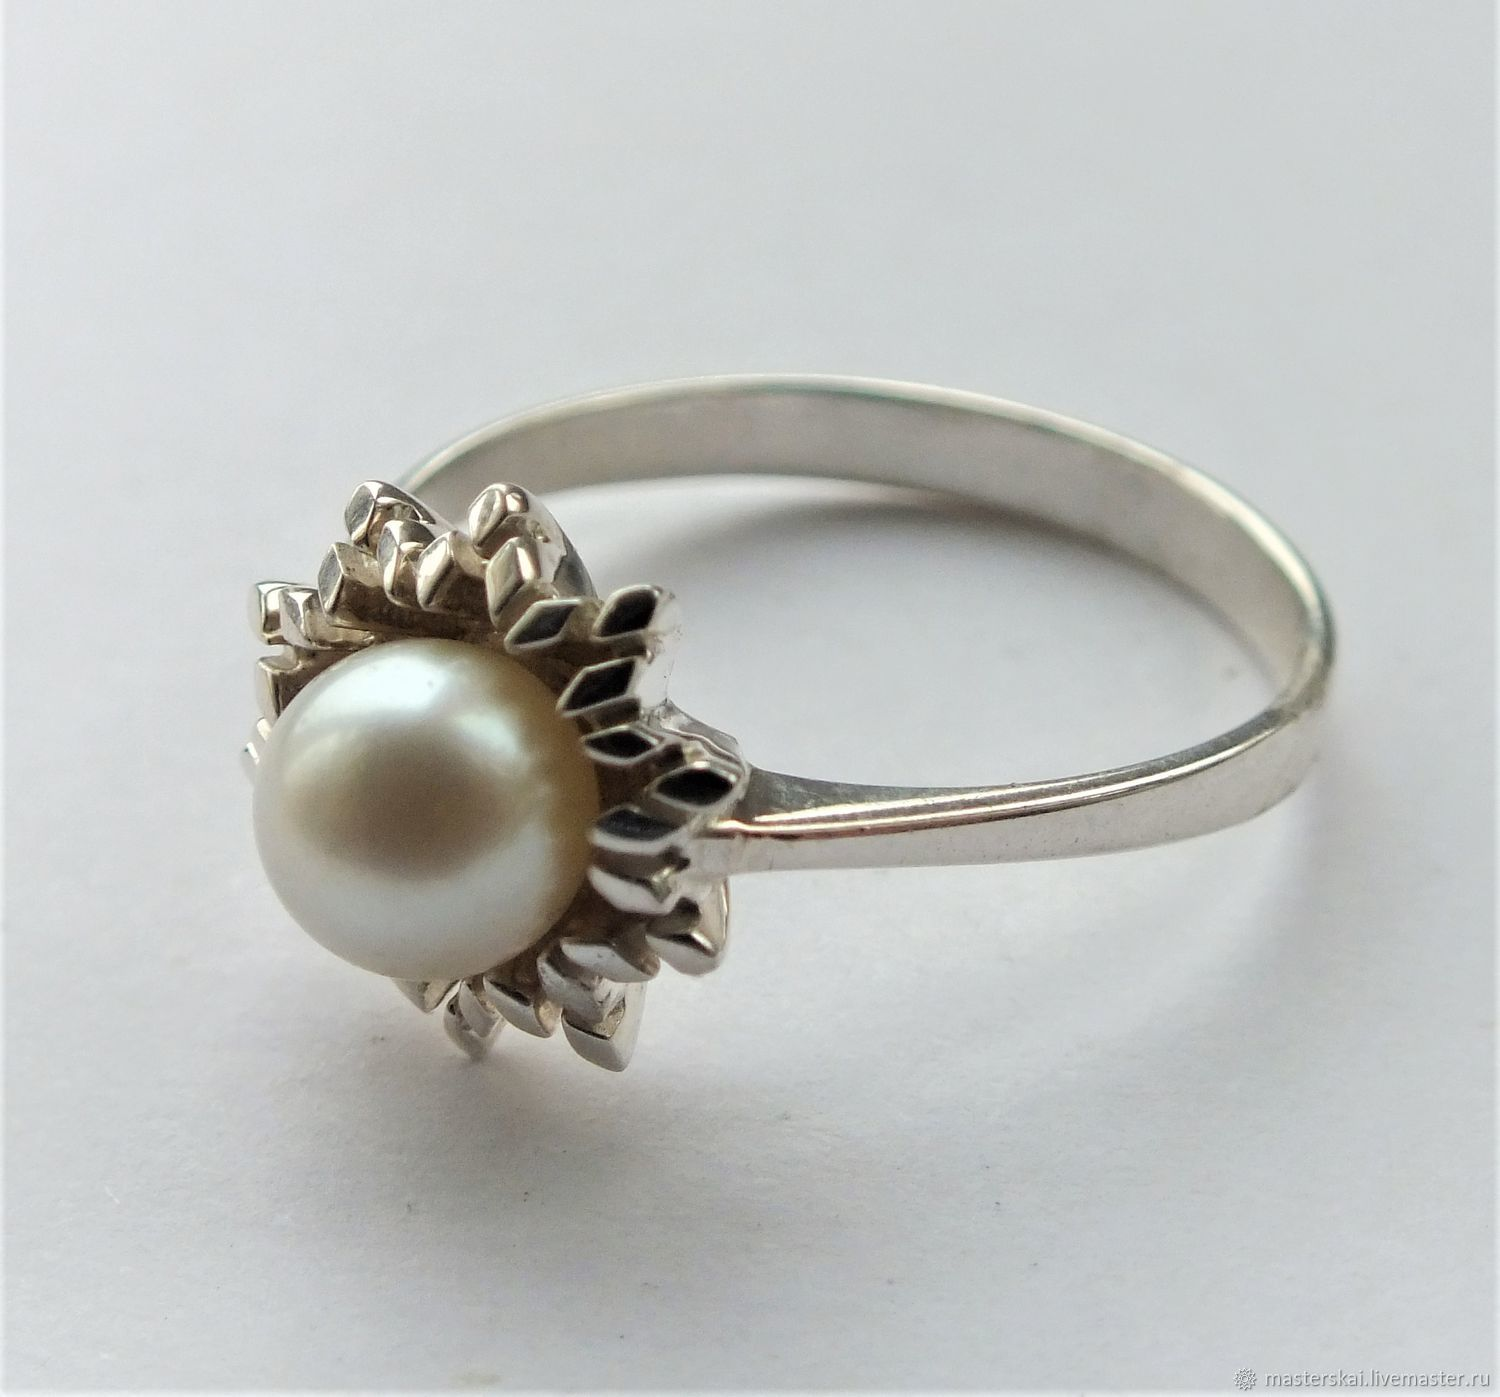 Ring 'Normina' - natural pearls, 925 silver, Rings, Moscow,  Фото №1